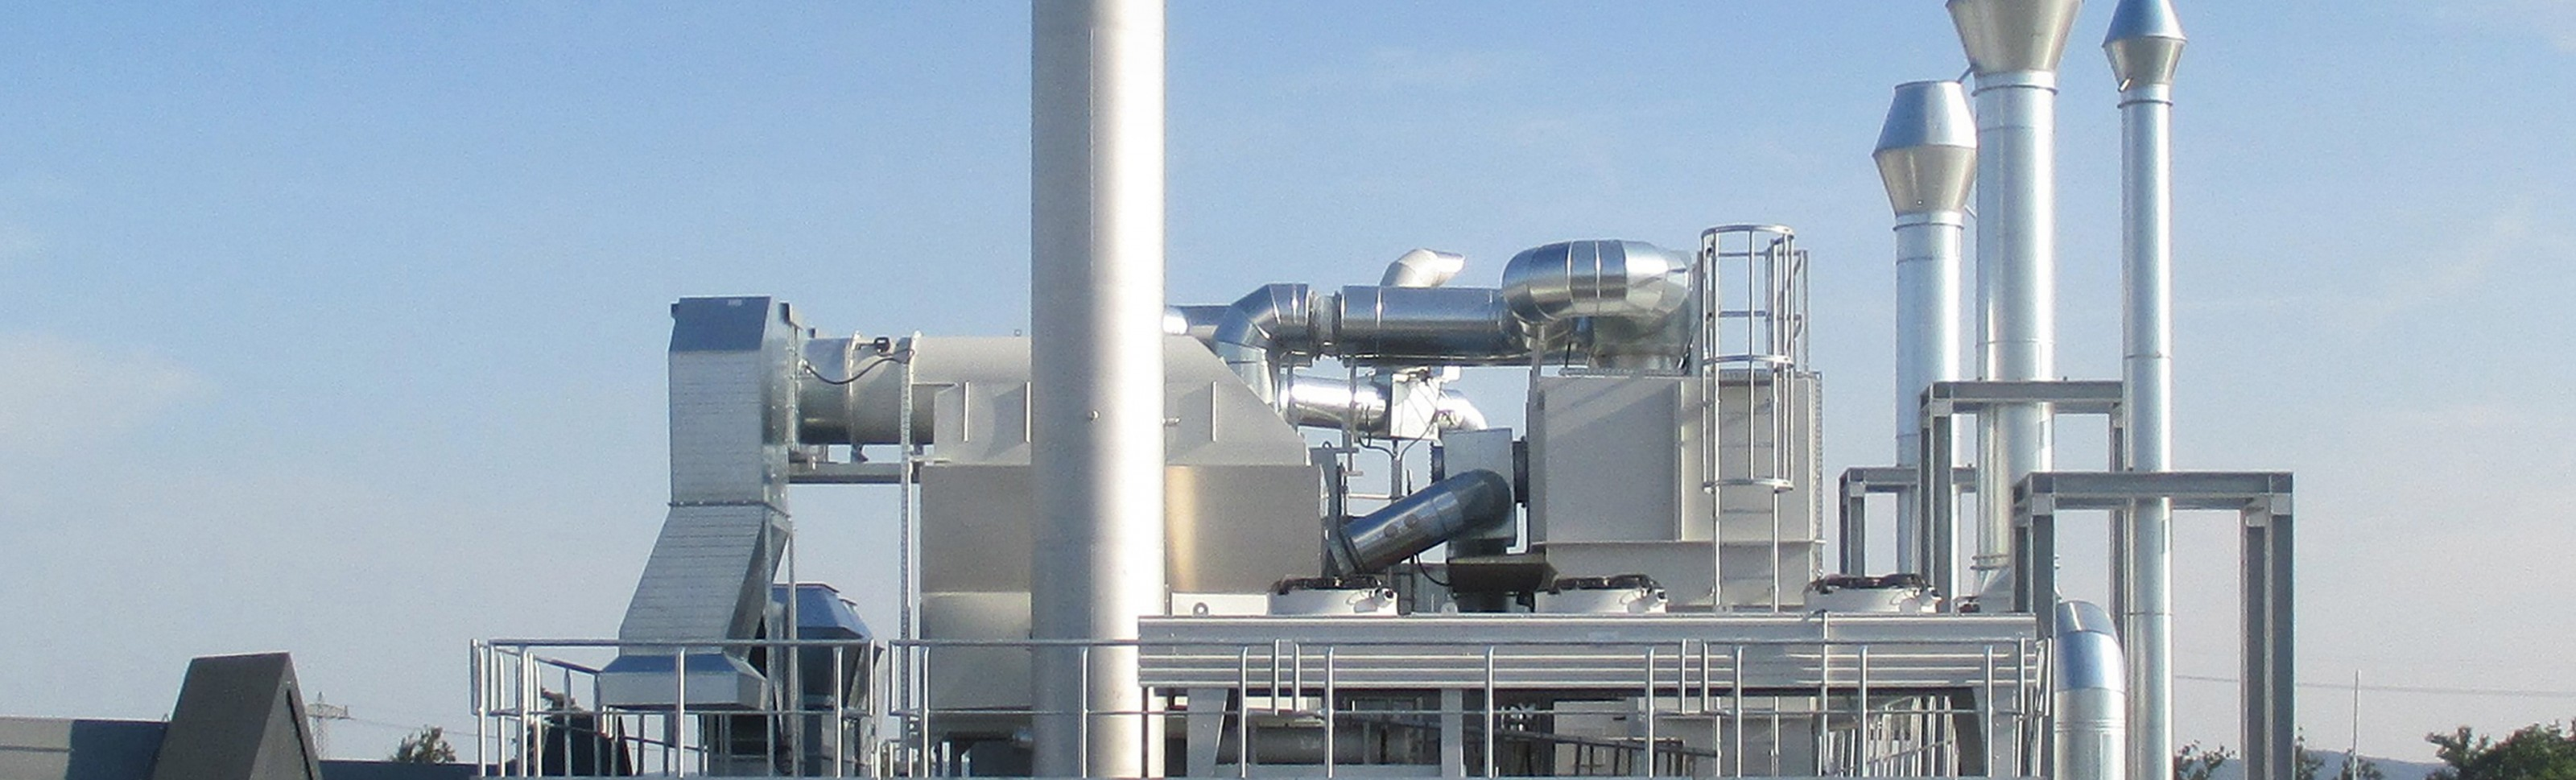 energy recovery plant